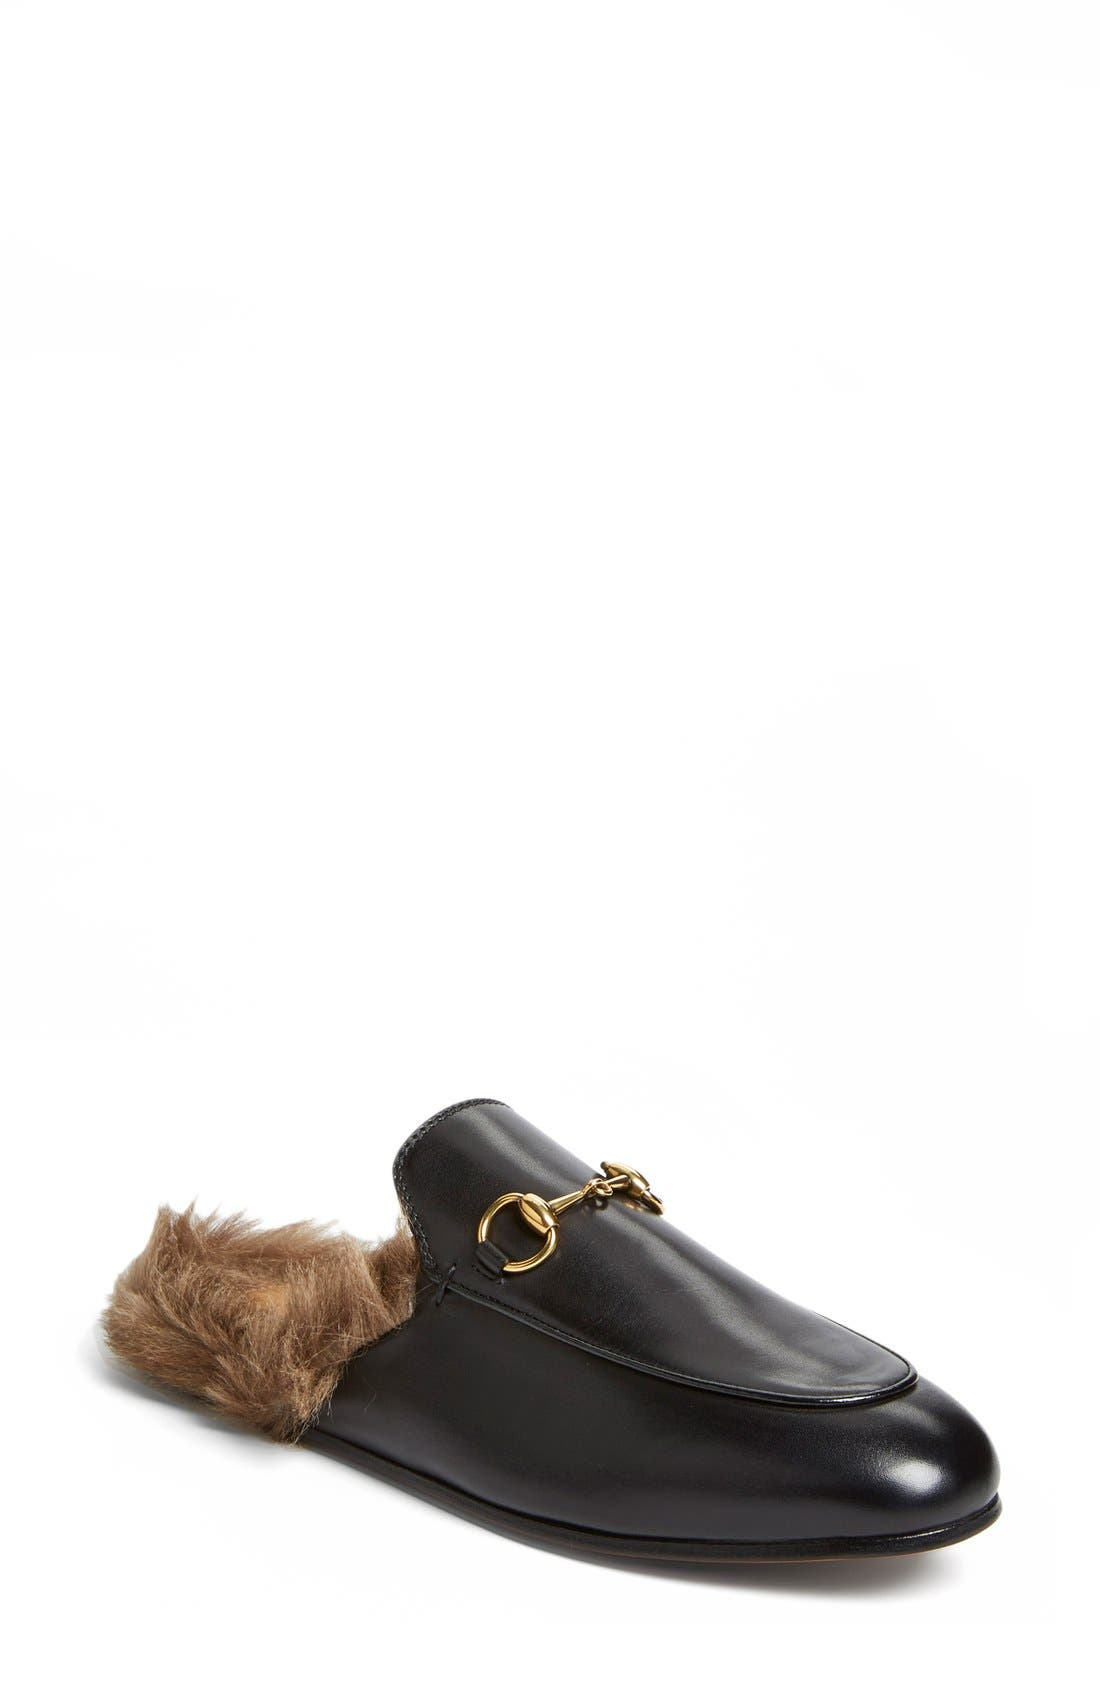 Main Image - Gucci Princetown Genuine Shearling Loafer Mule (Women)